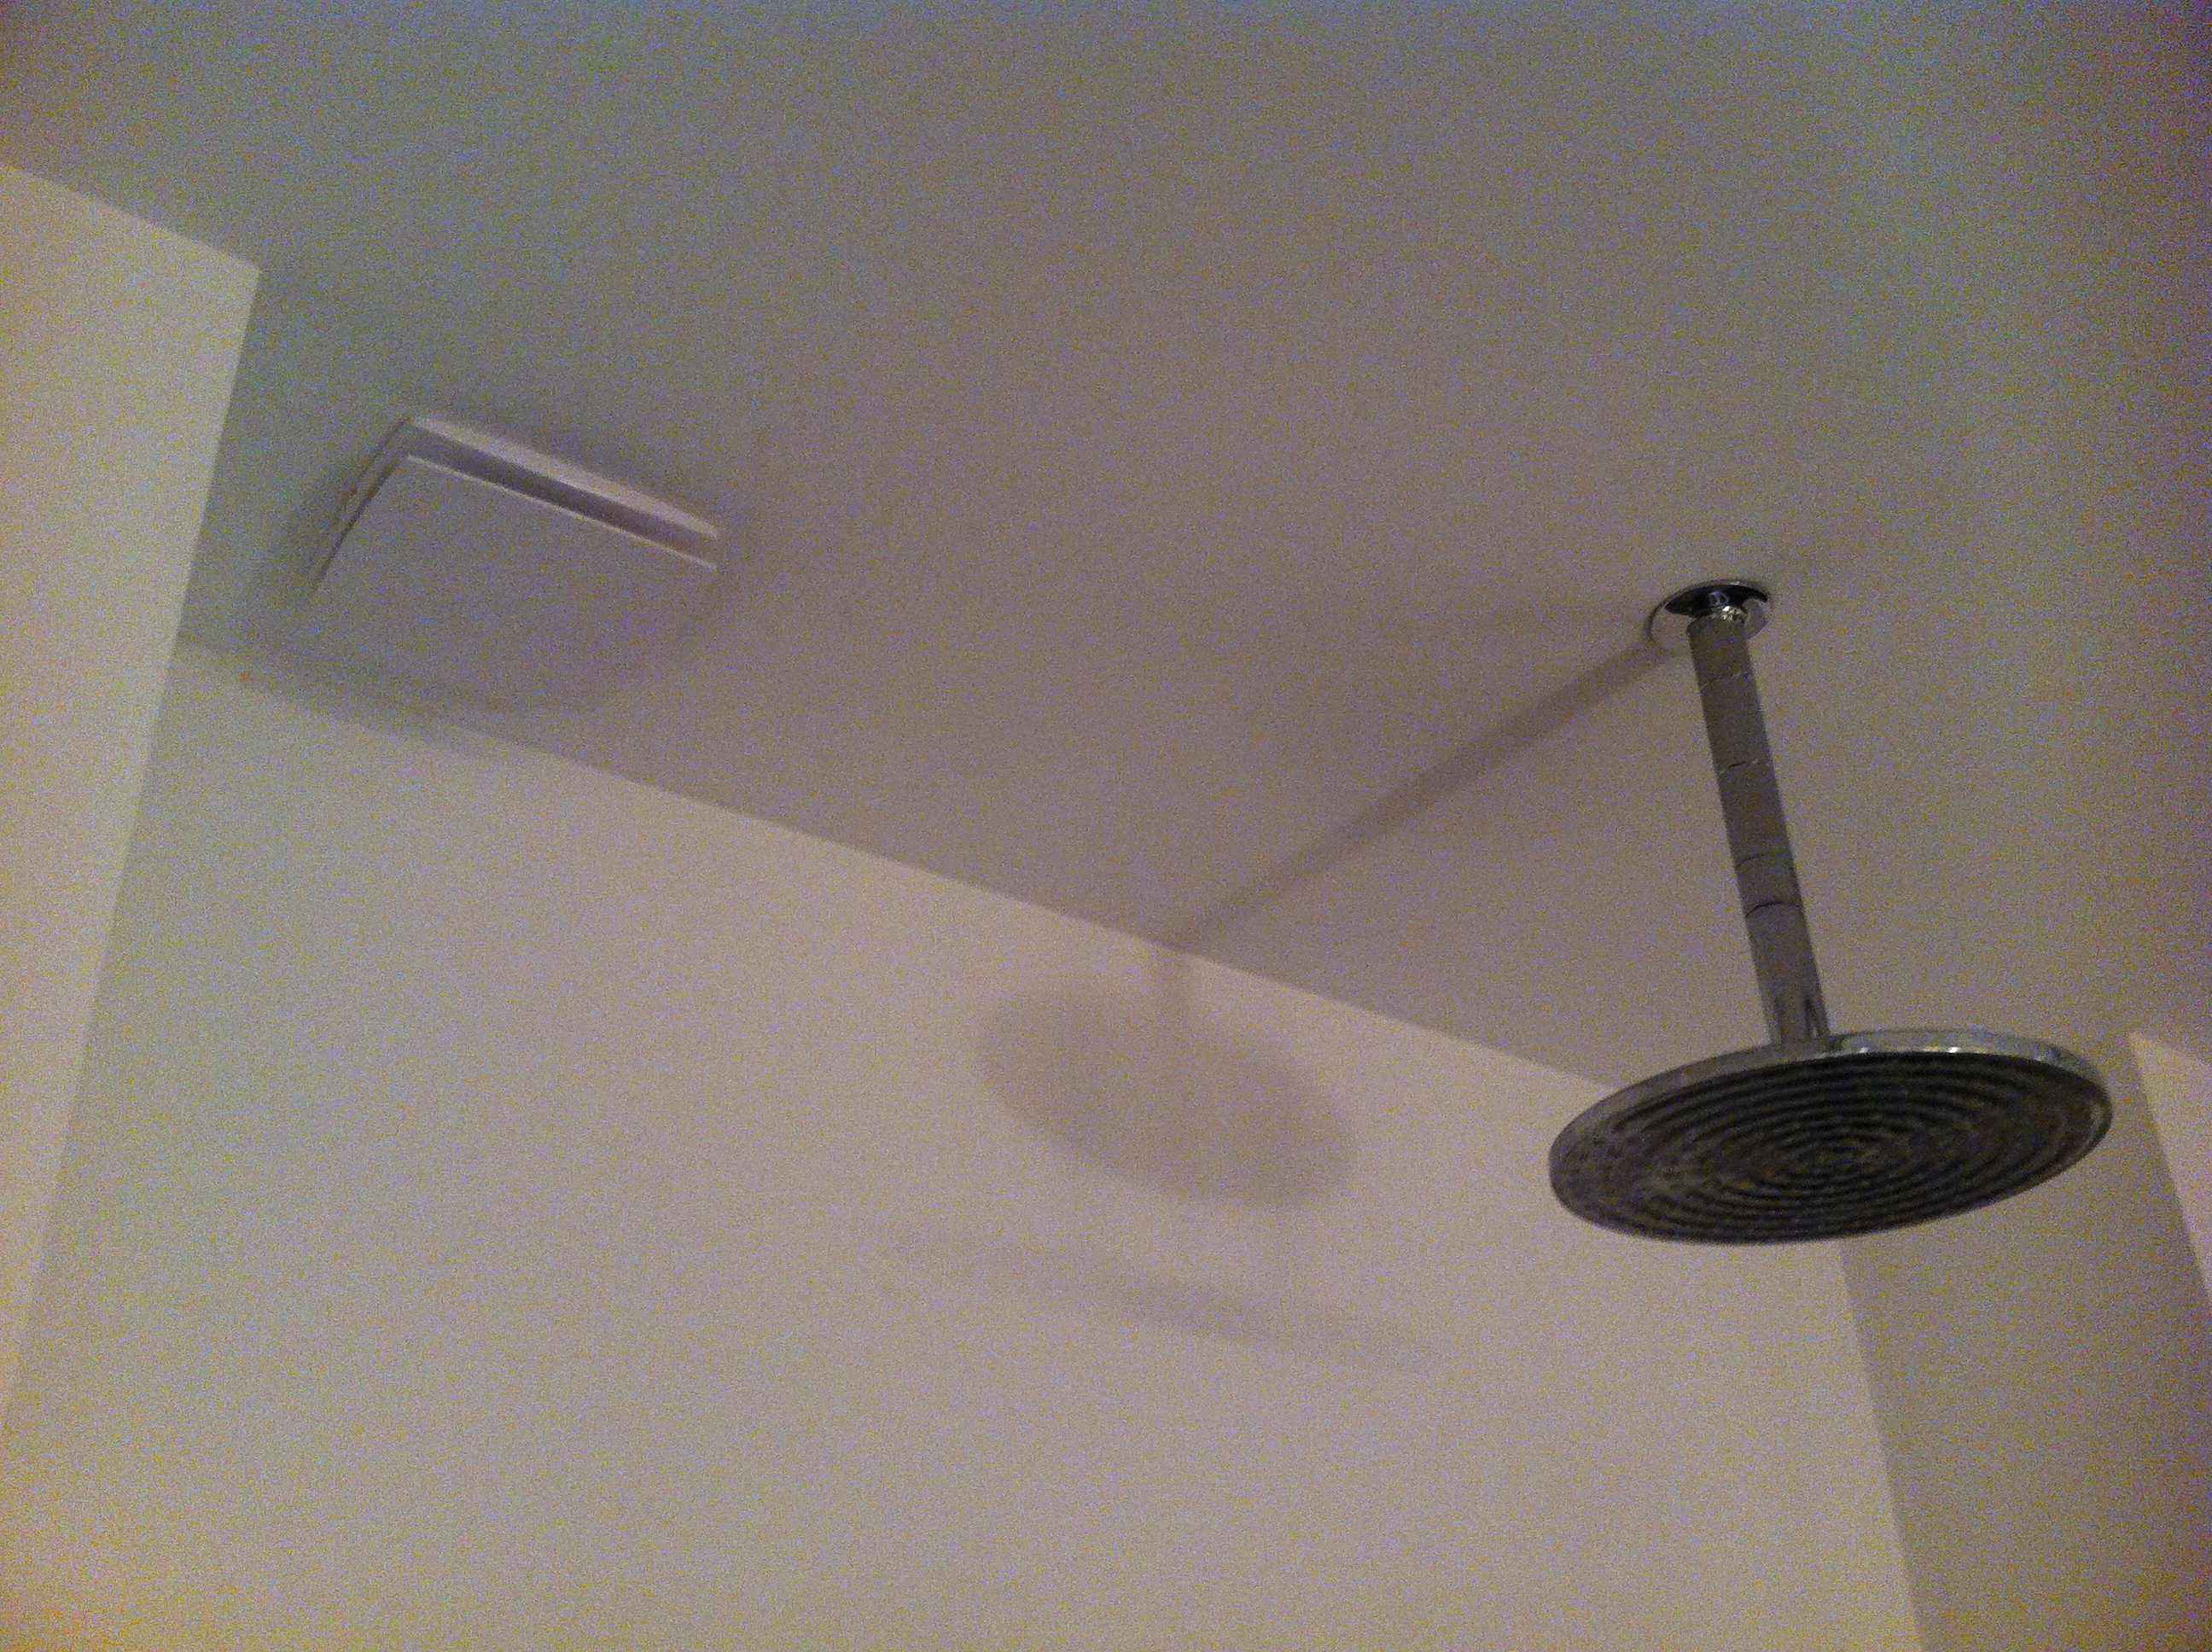 Emejing Ventilator Plafond Badkamer Contemporary - New Home Design ...